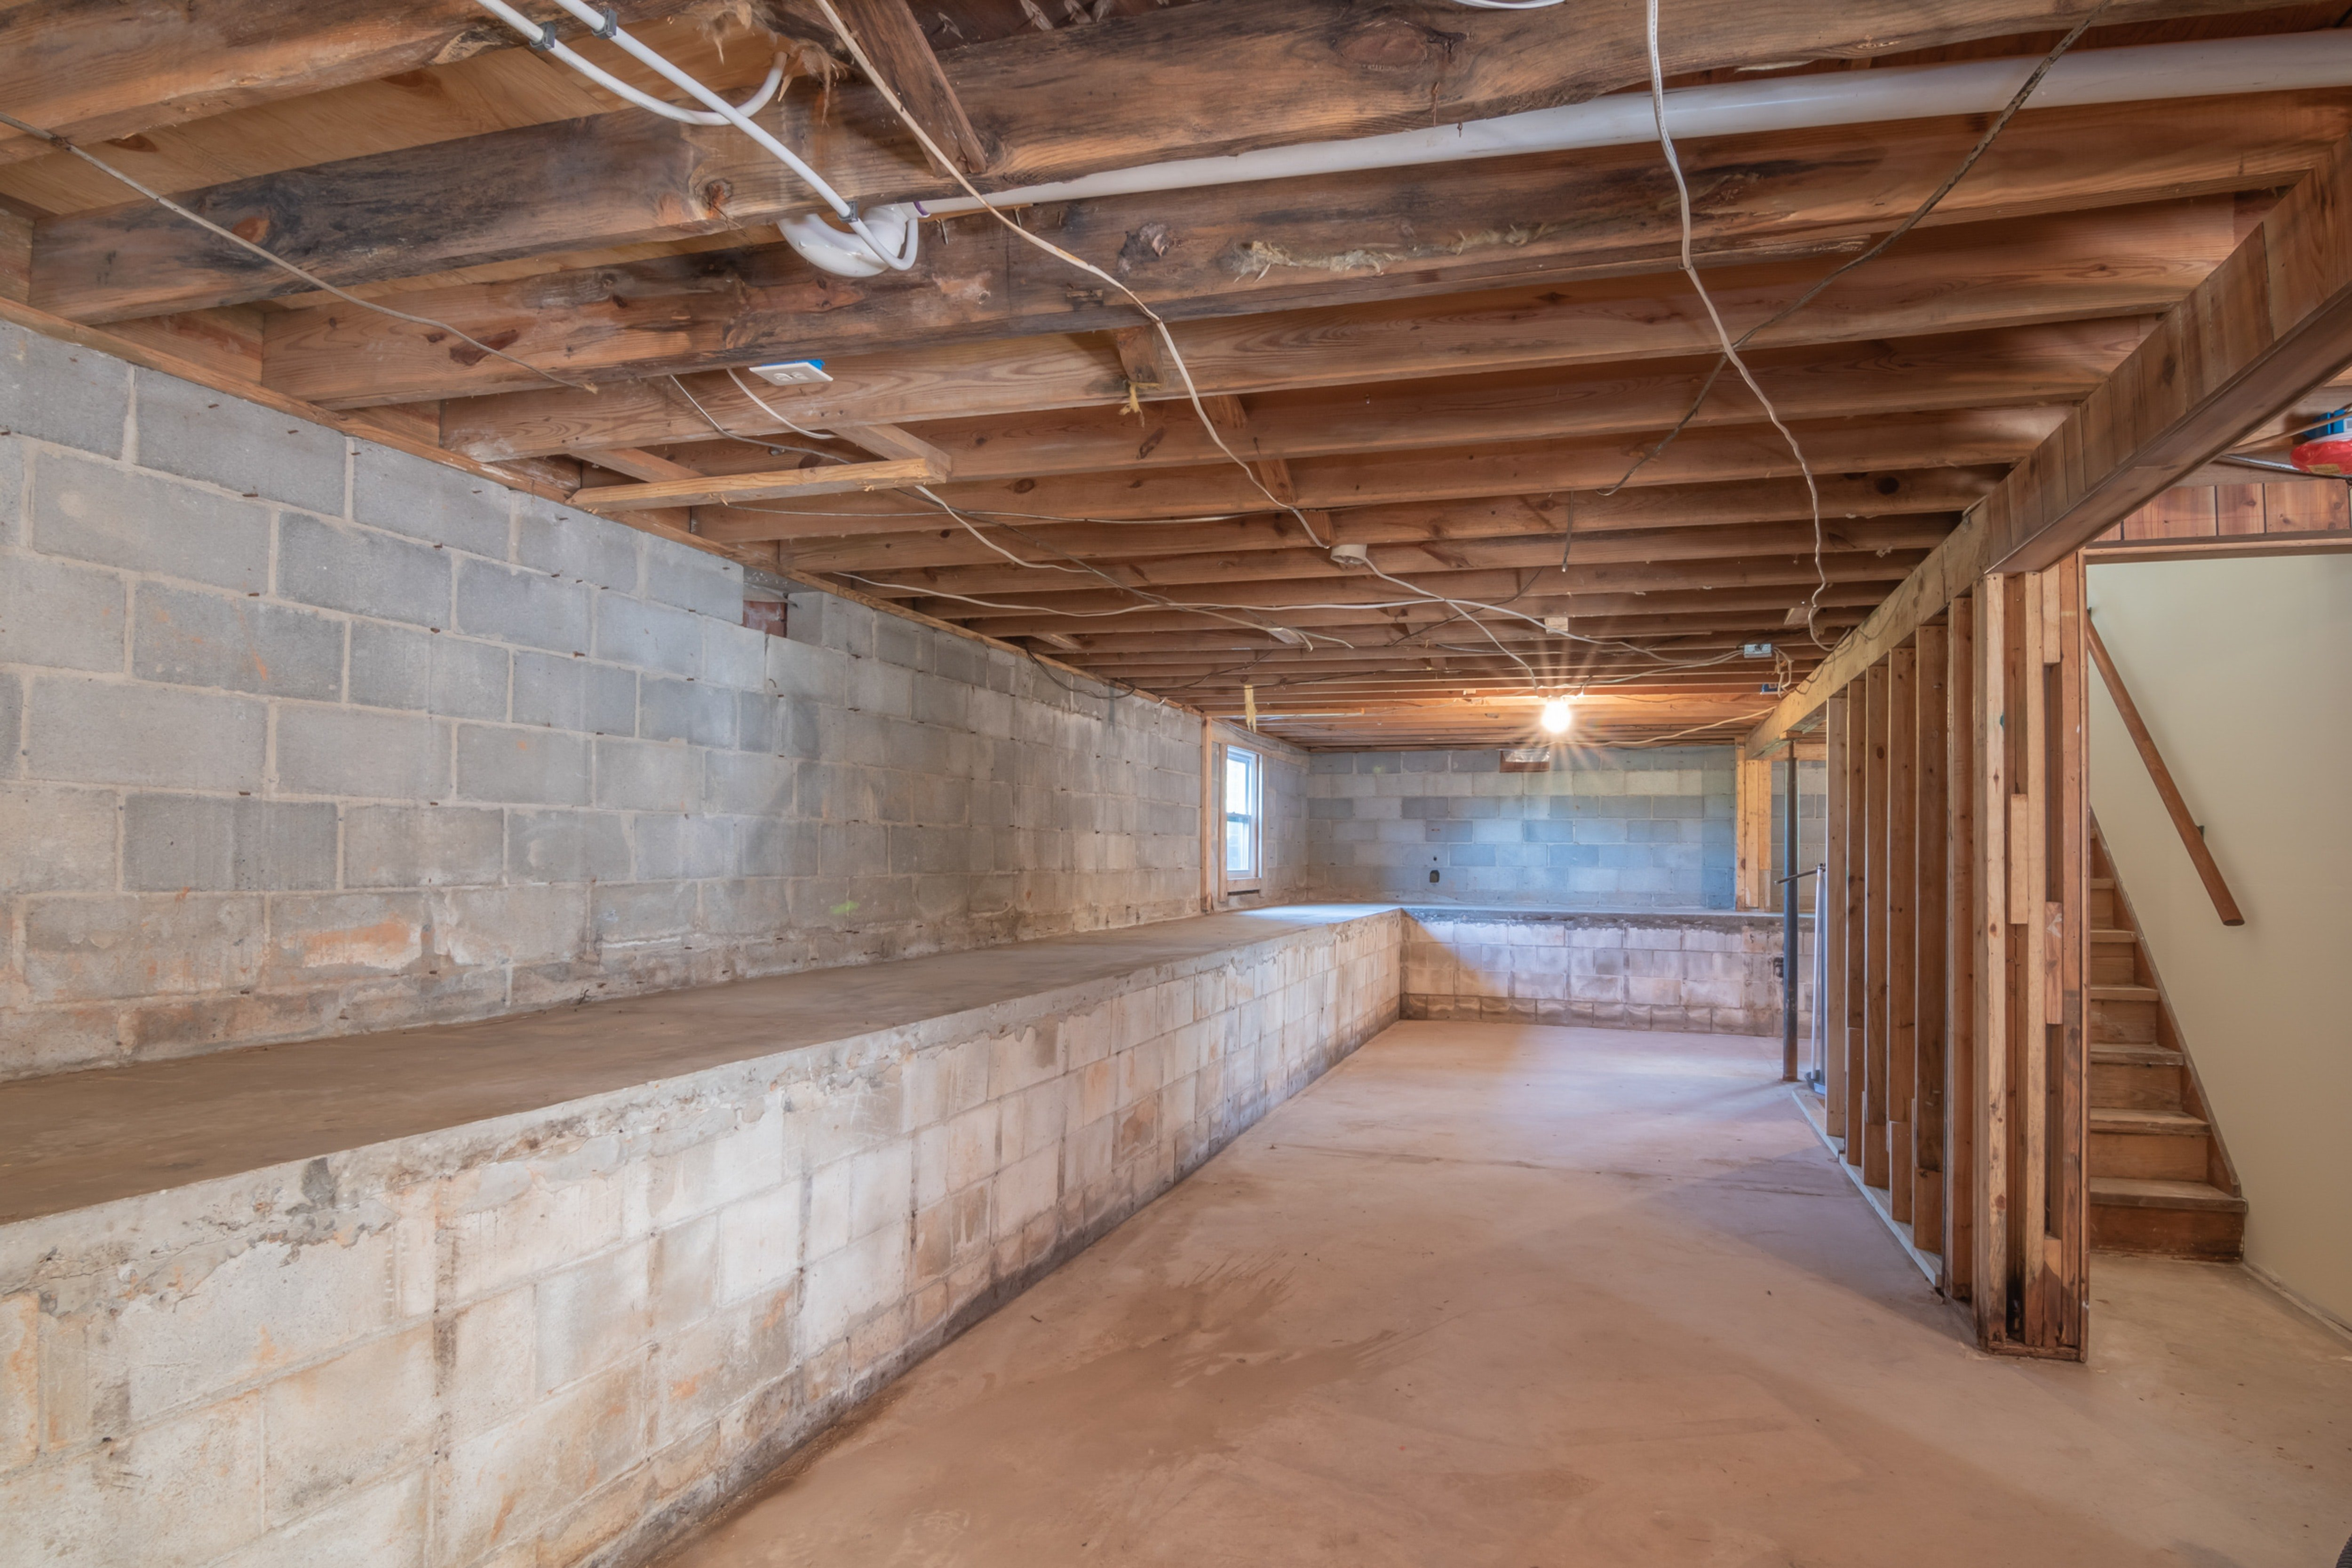 Stacey and Emily didn't know the basement had a secret door | Photo: Pexels